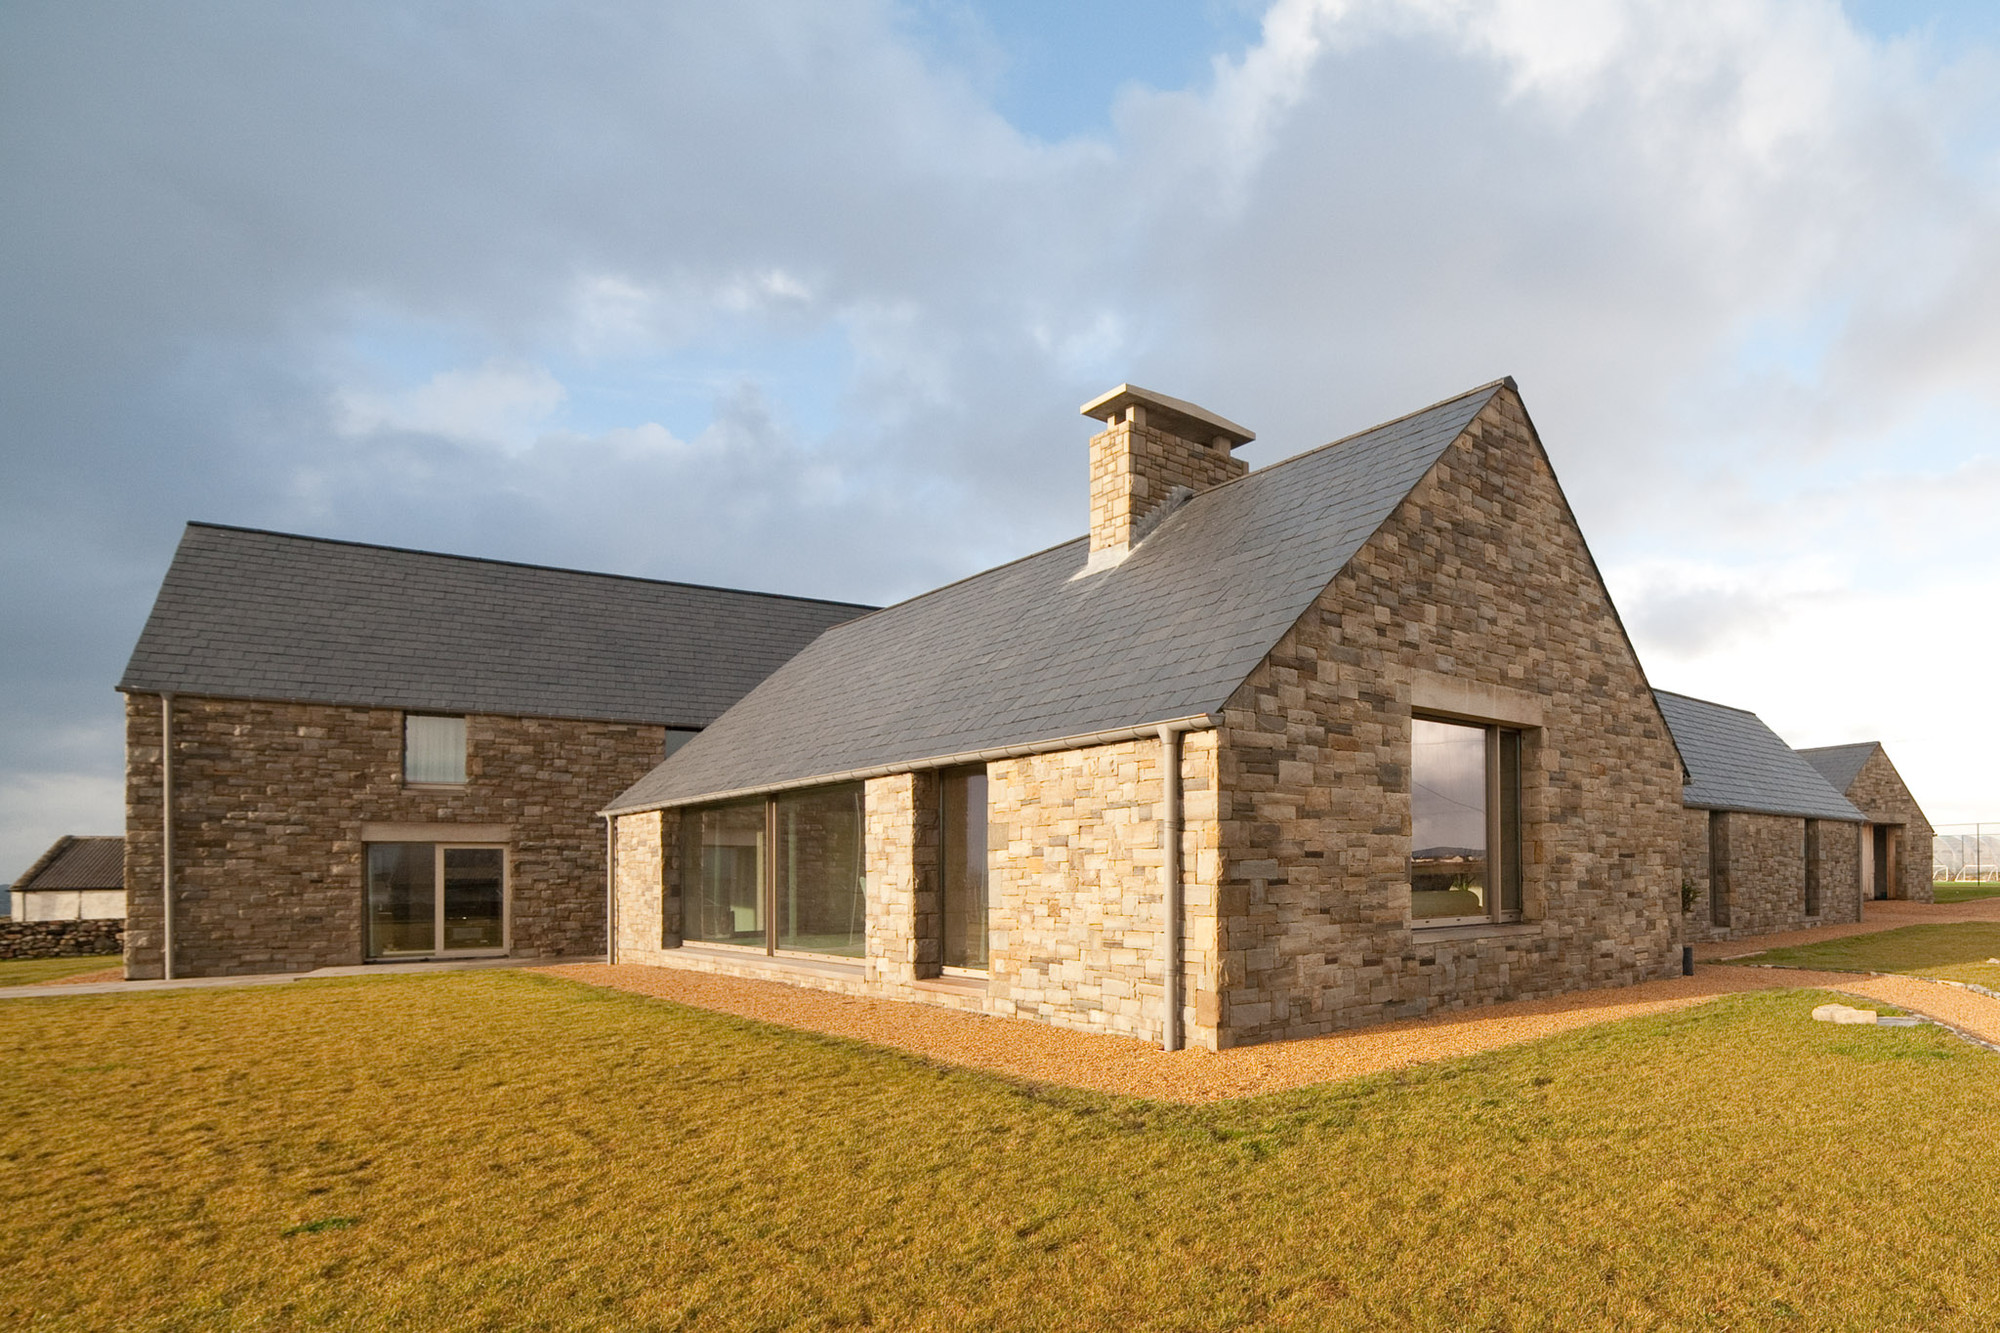 House in Blacksod Bay / Tierney Haines Architects, © Stephen Tierney